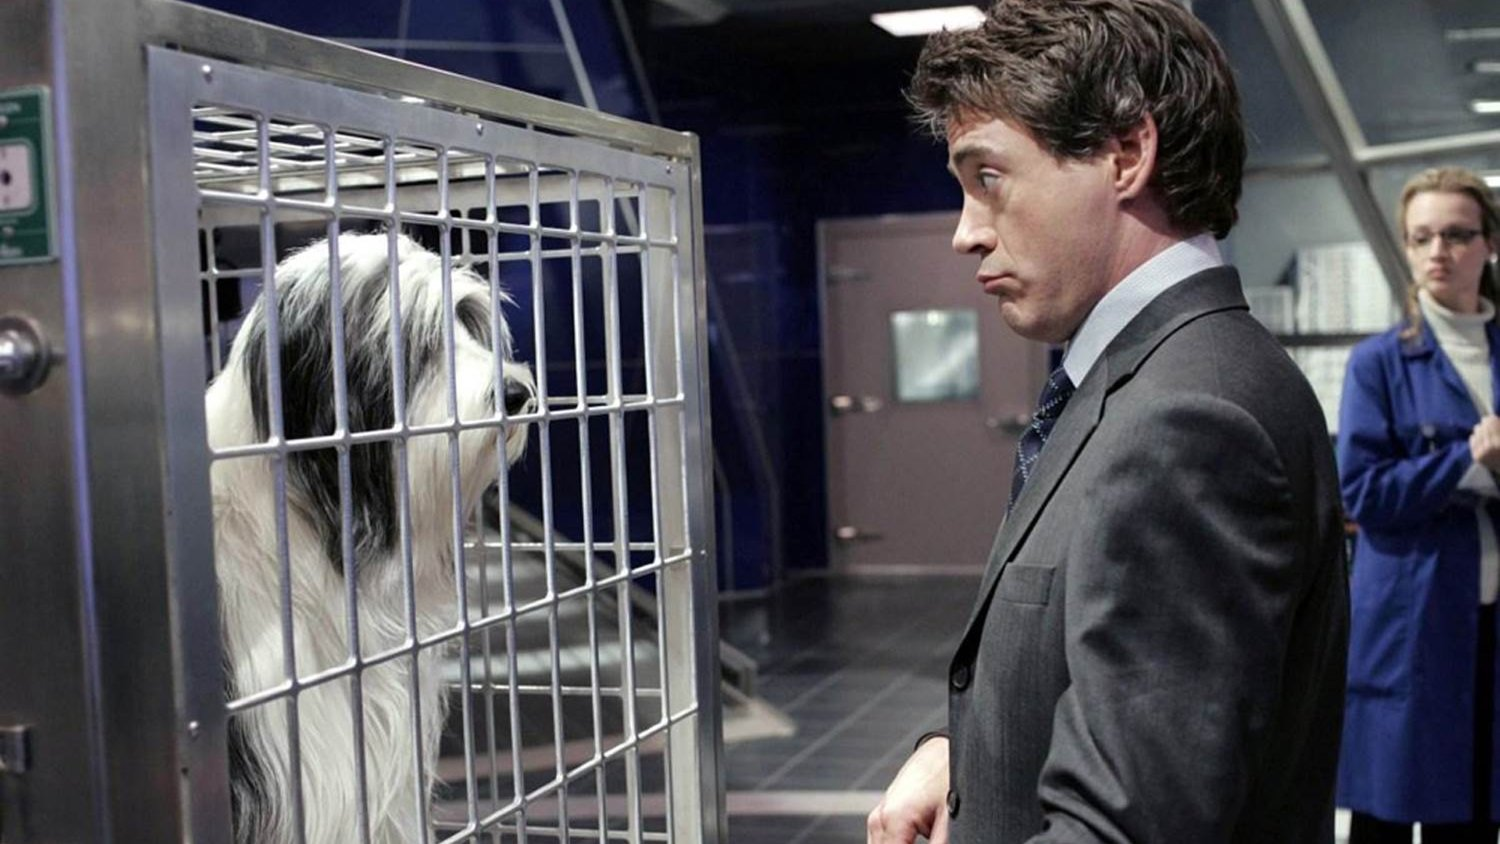 Robert Downey Jr. Is Set to Play Doctor Dolittle in THE VOYAGE OF DOCTOR DOLITTLE